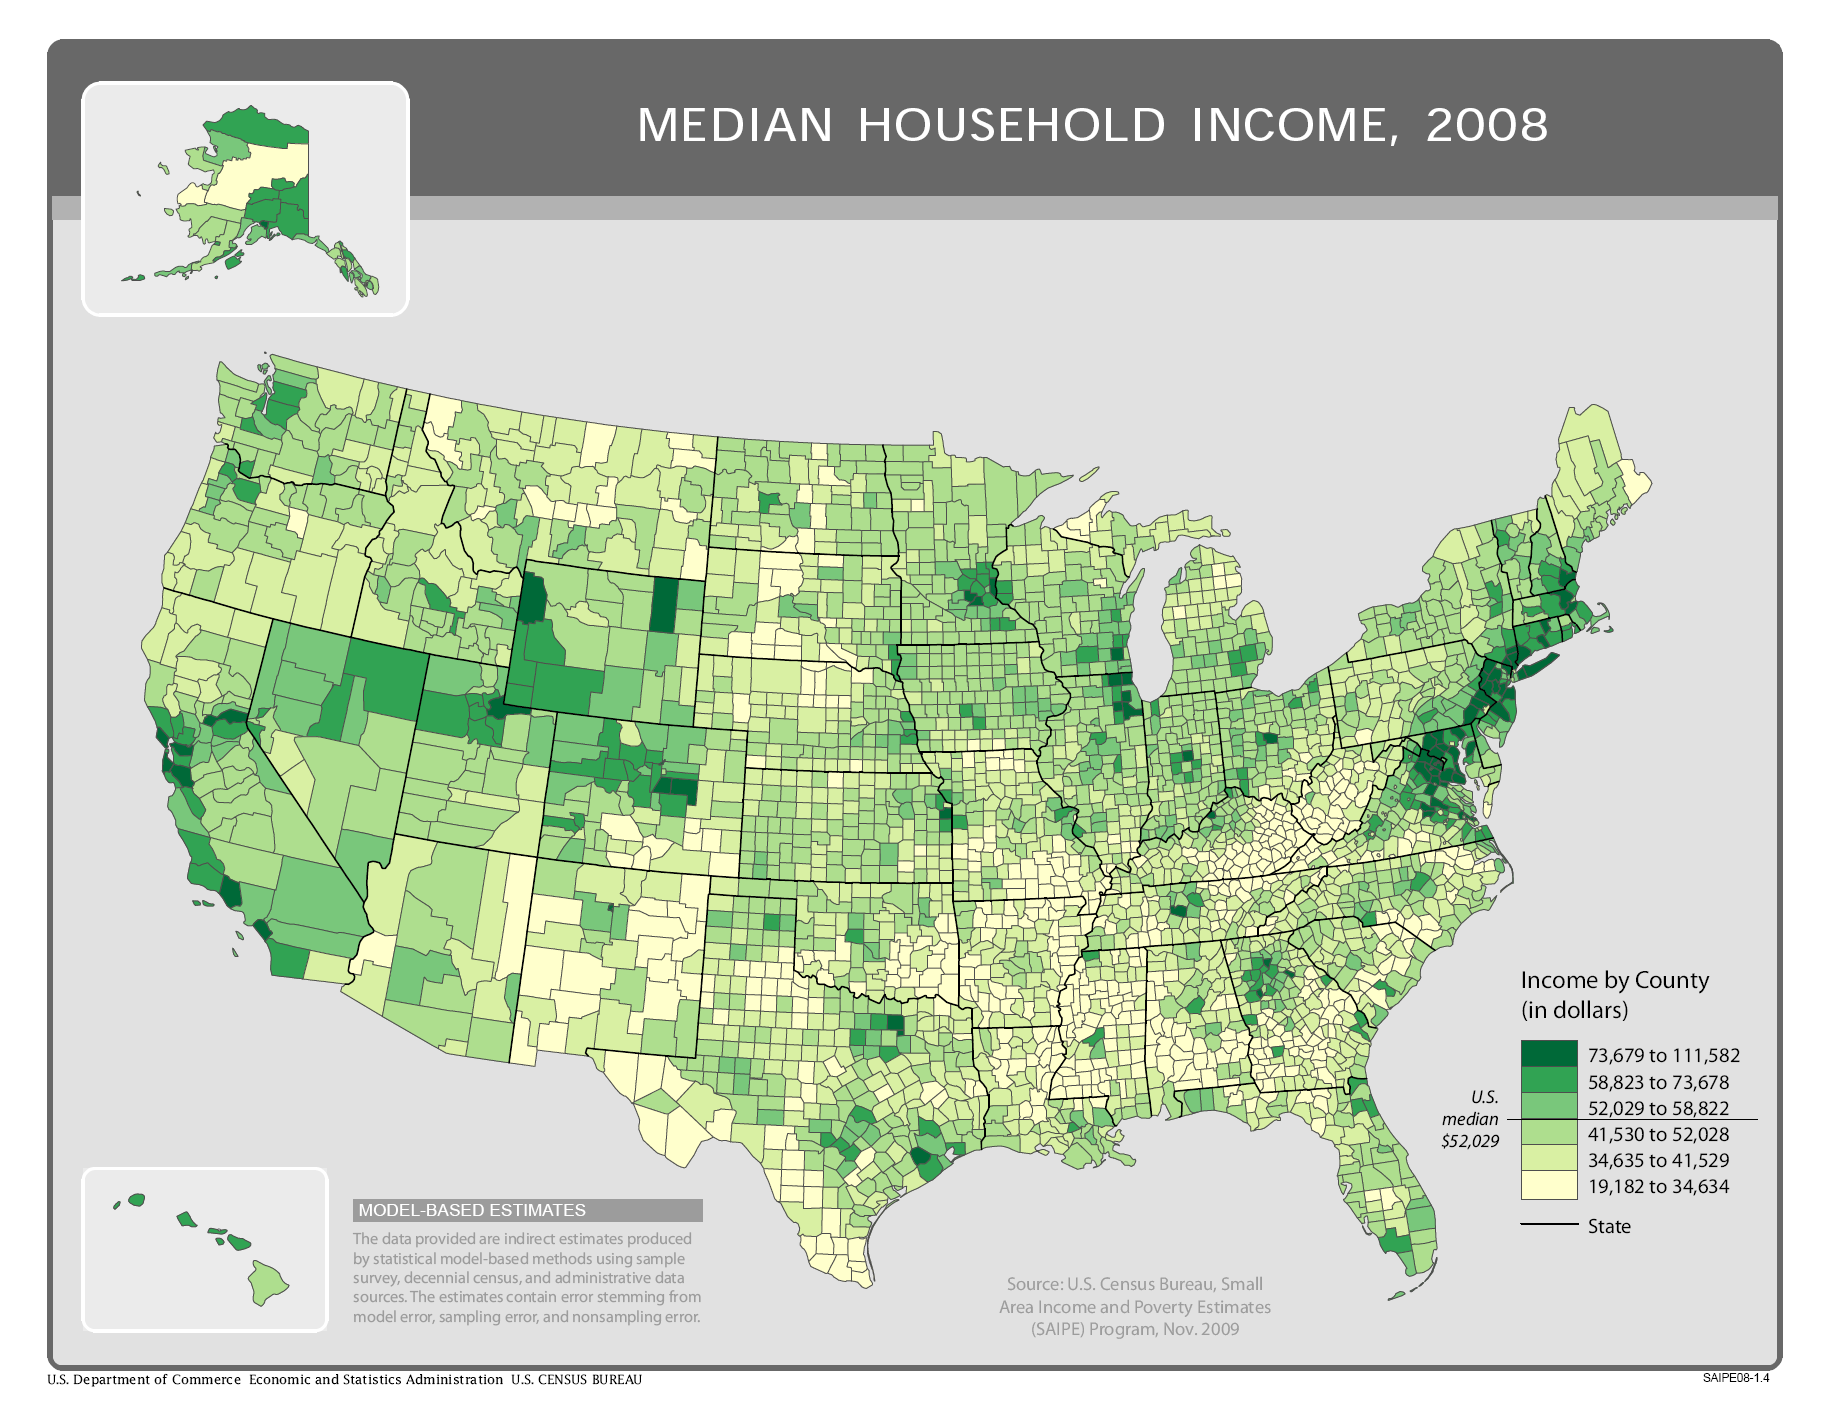 FileUS County Household Median Income Png Wikimedia Commons - Median income map us